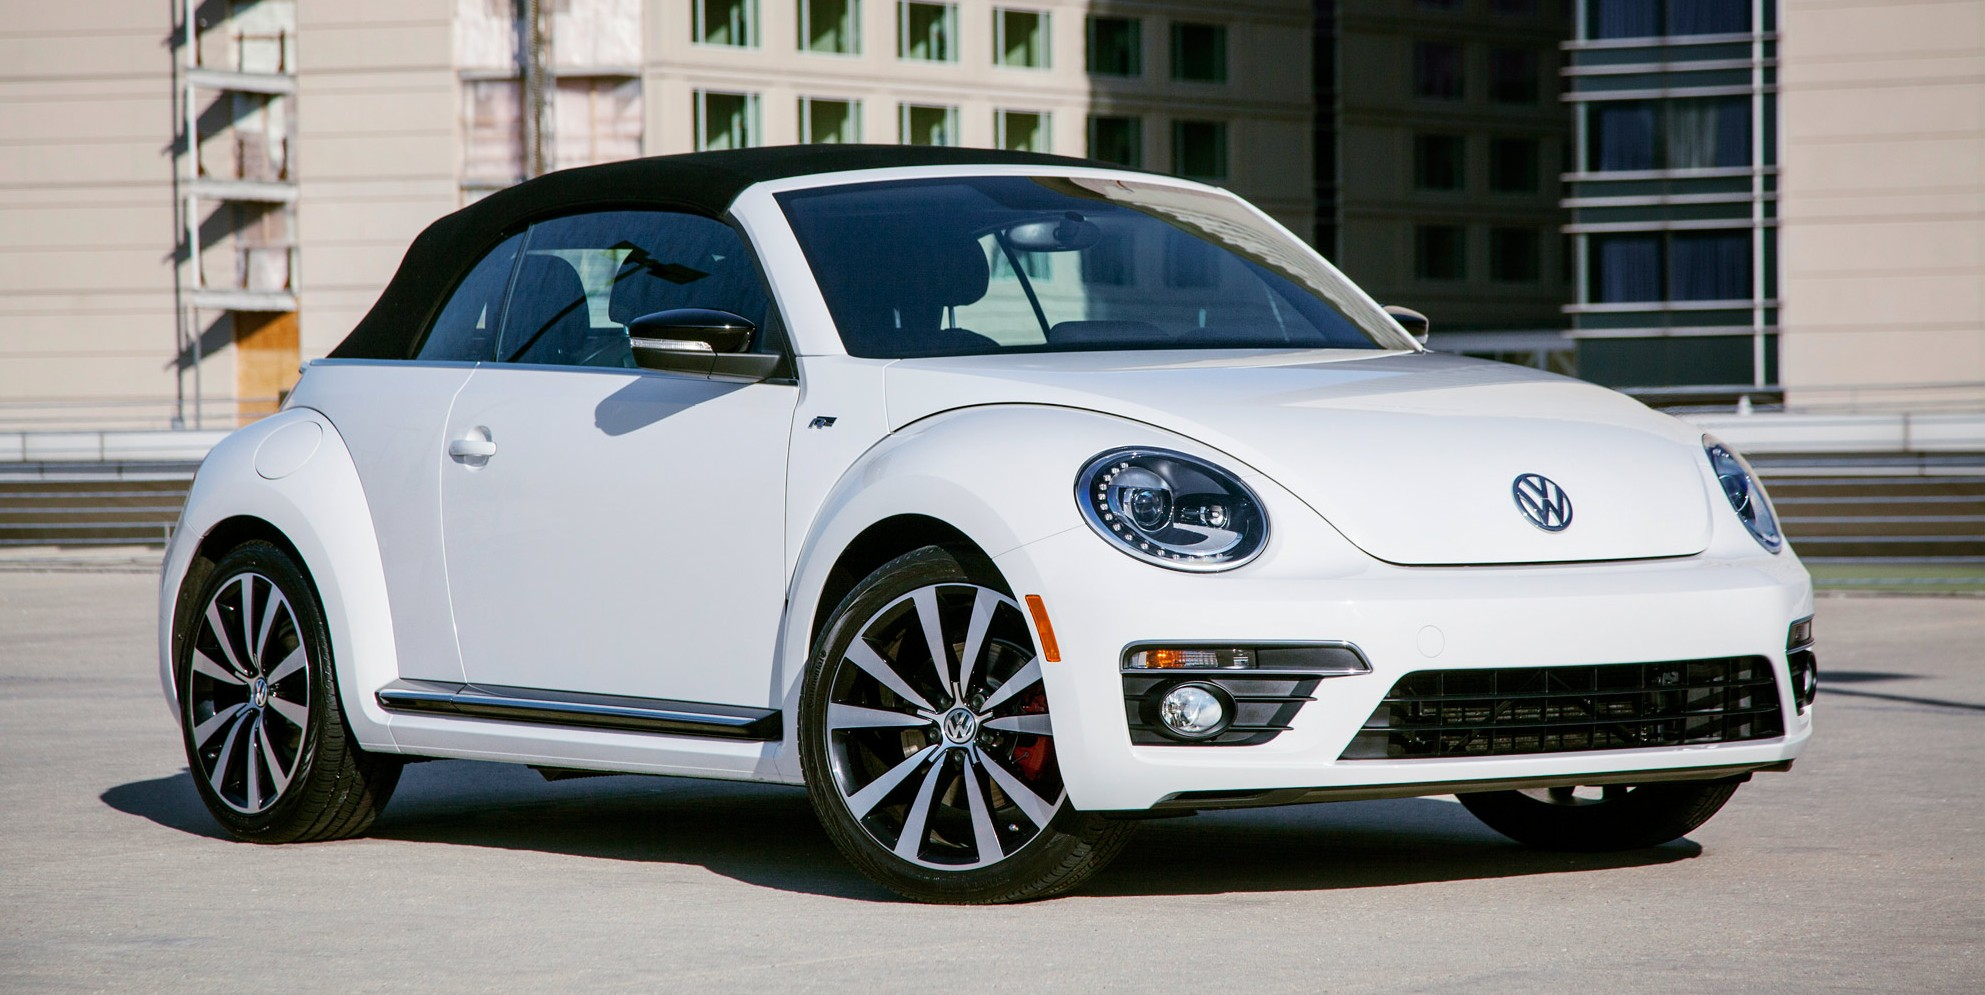 VW-Beetle-Convertible-R-Line